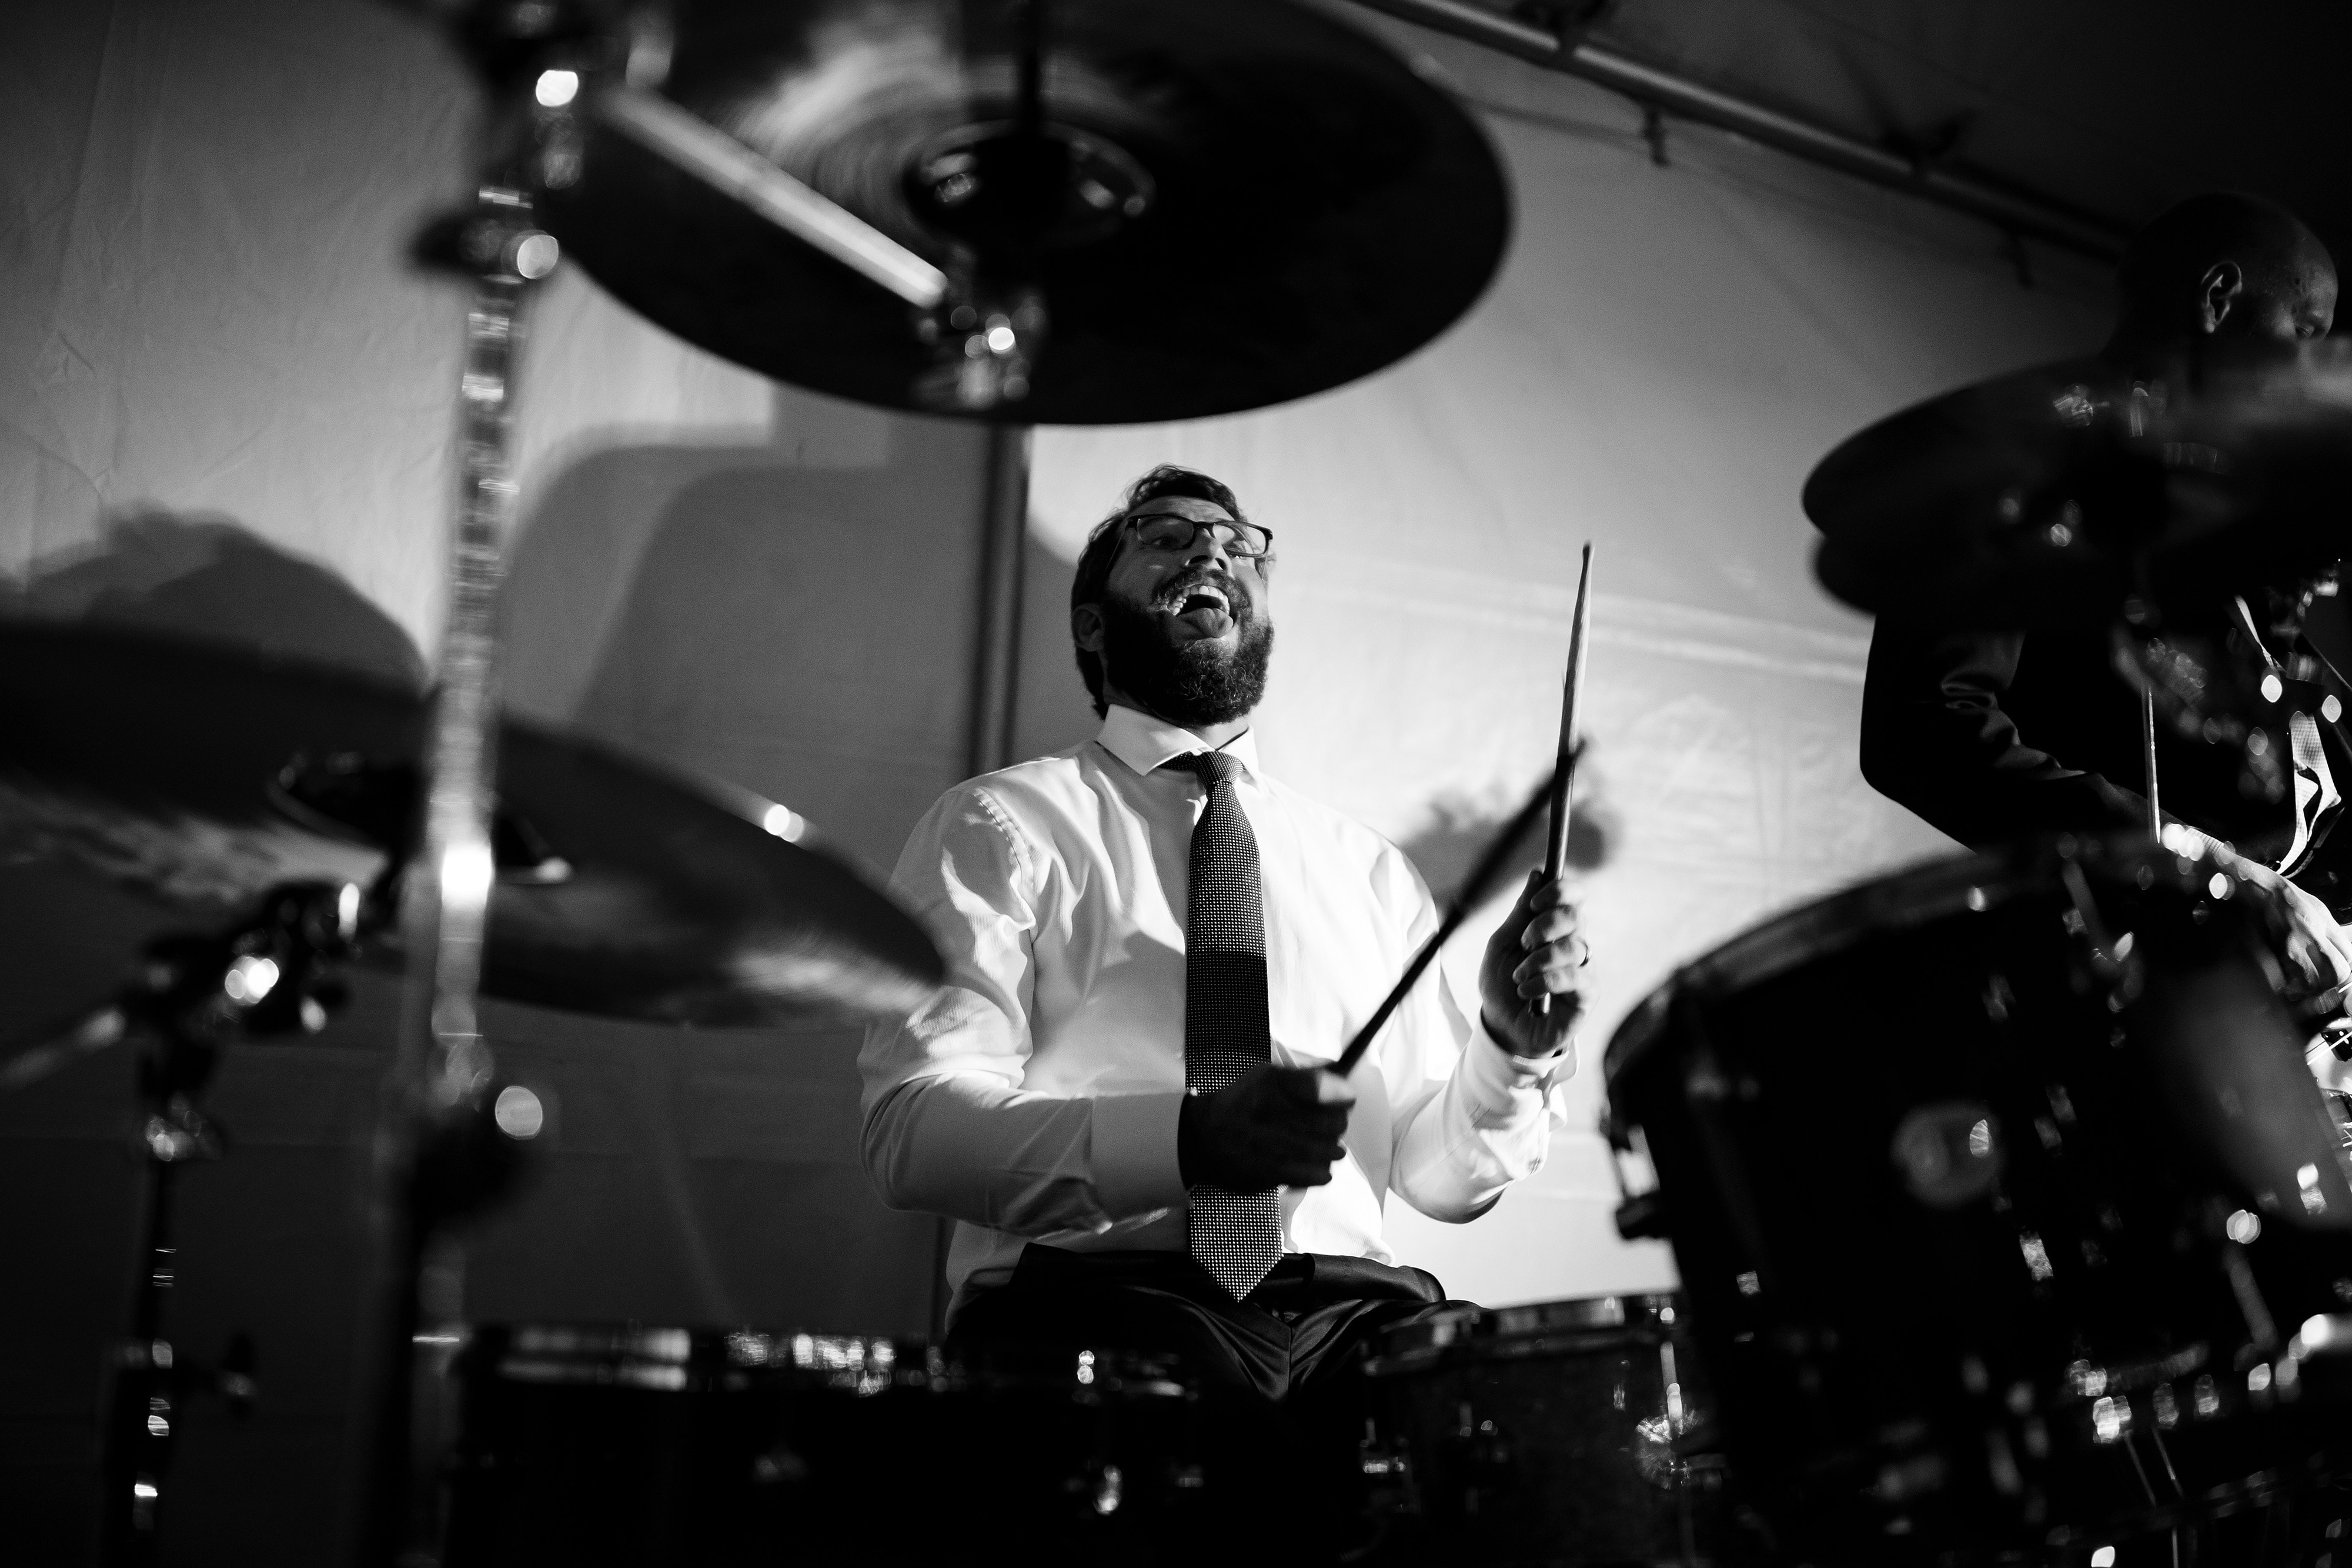 The groom plays the drums with his band during their wedding reception at Snowmass Cottages